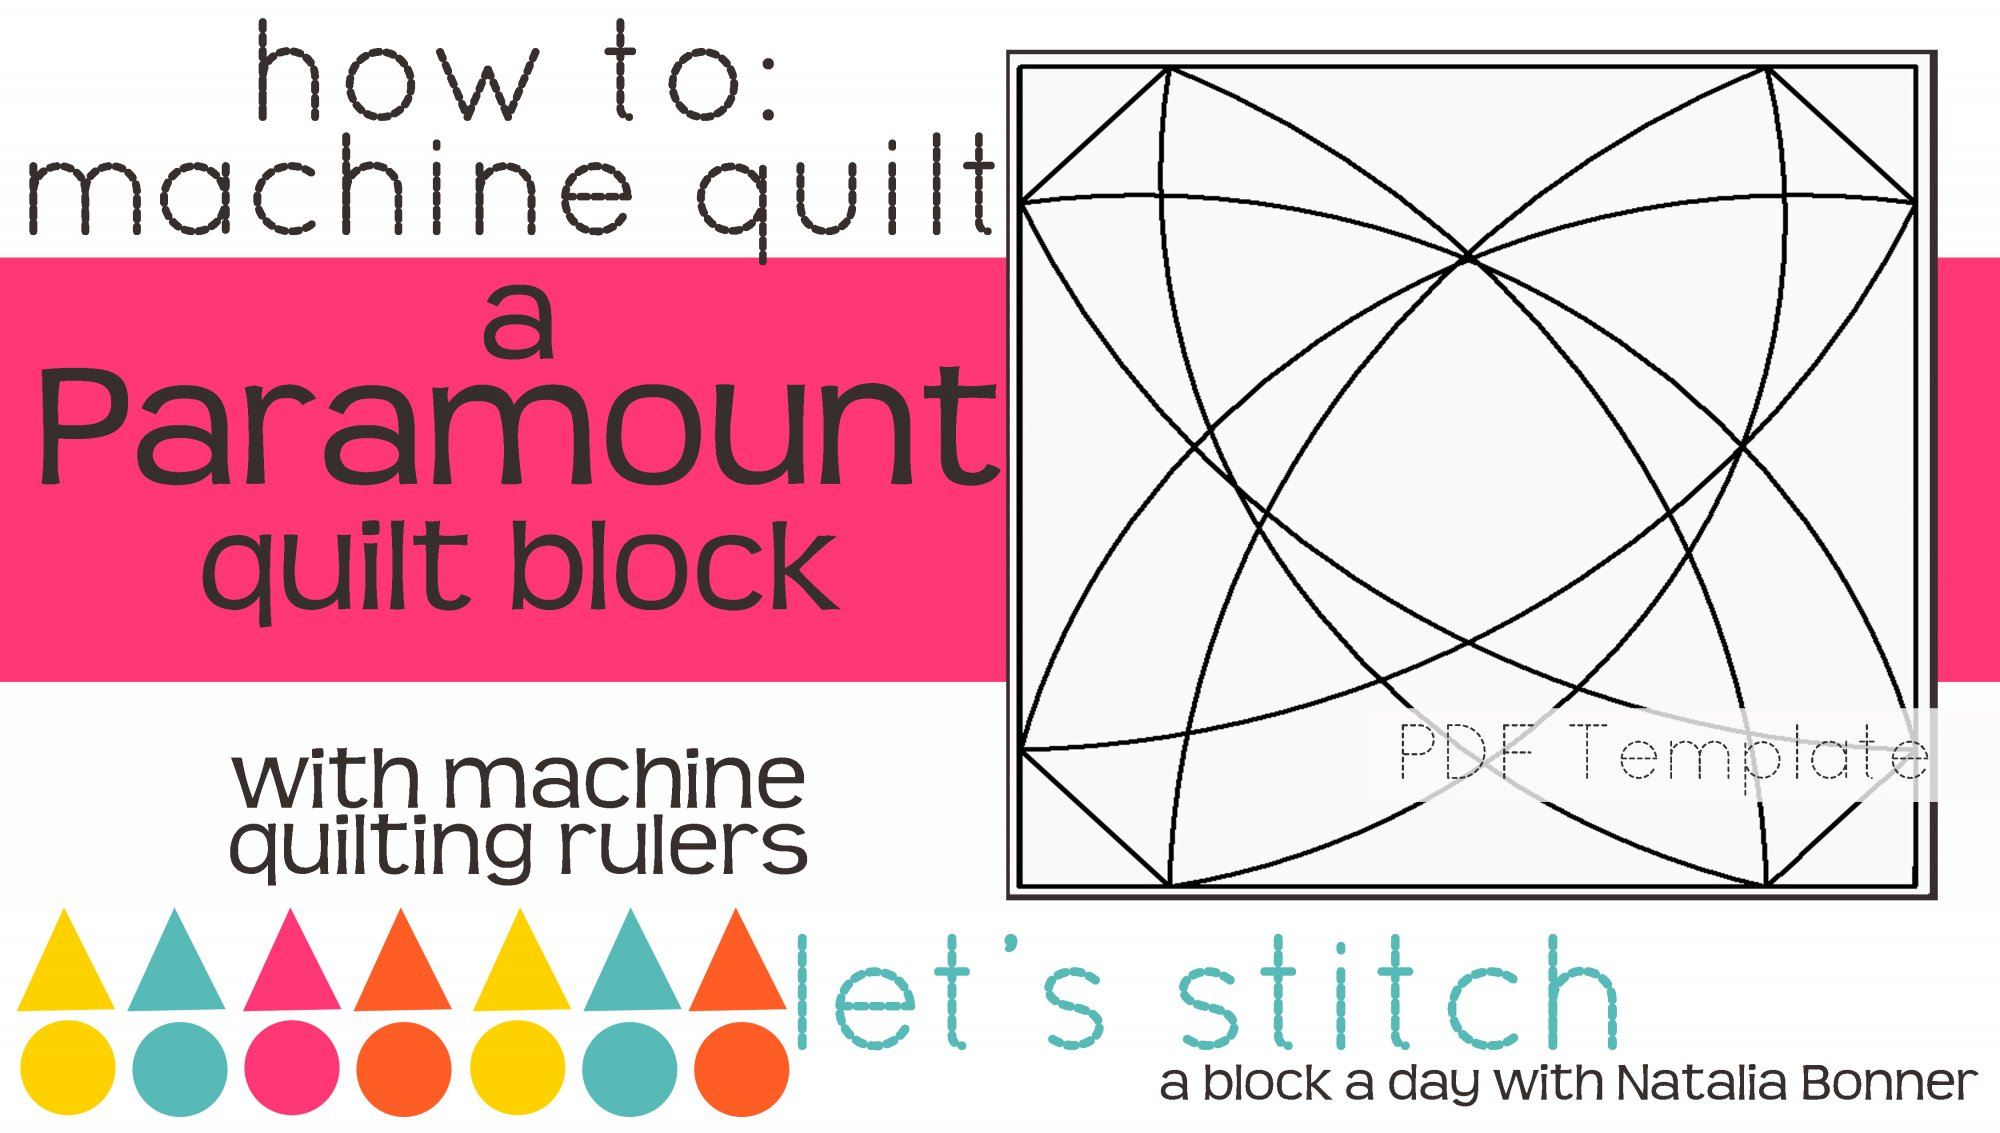 Let's Stitch - A Block a Day With Natalia Bonner - PDF - Paramount